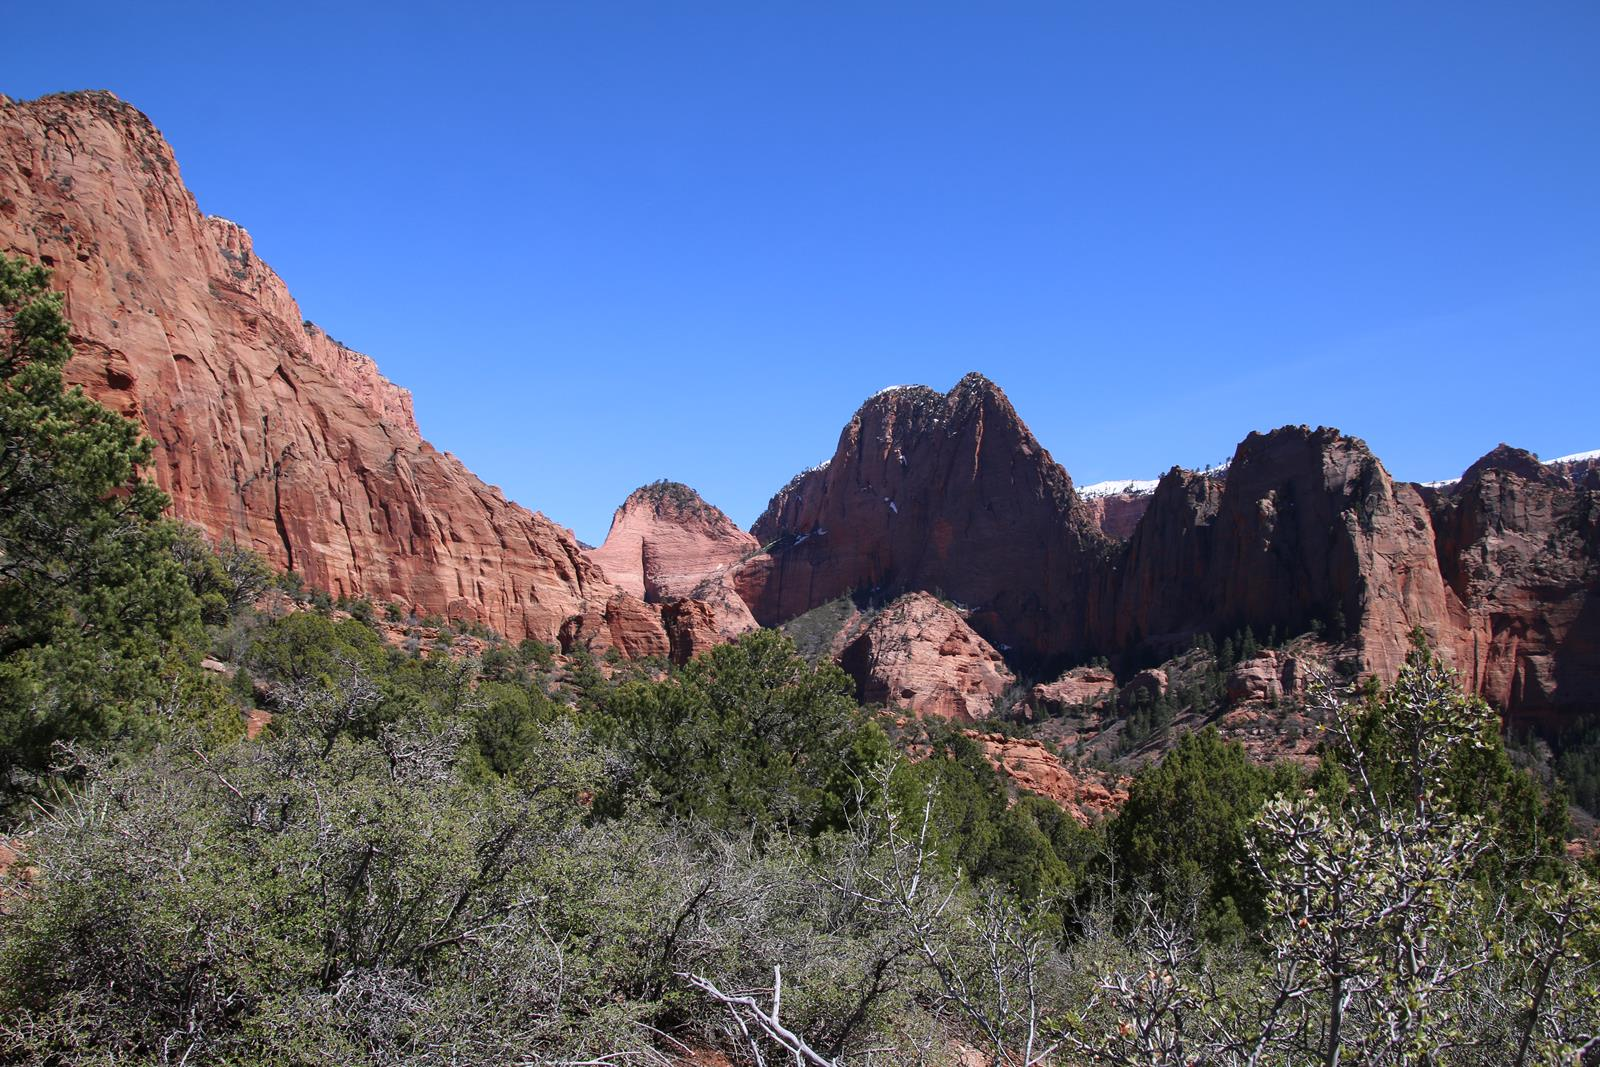 Kolob Canyons, in zion national park